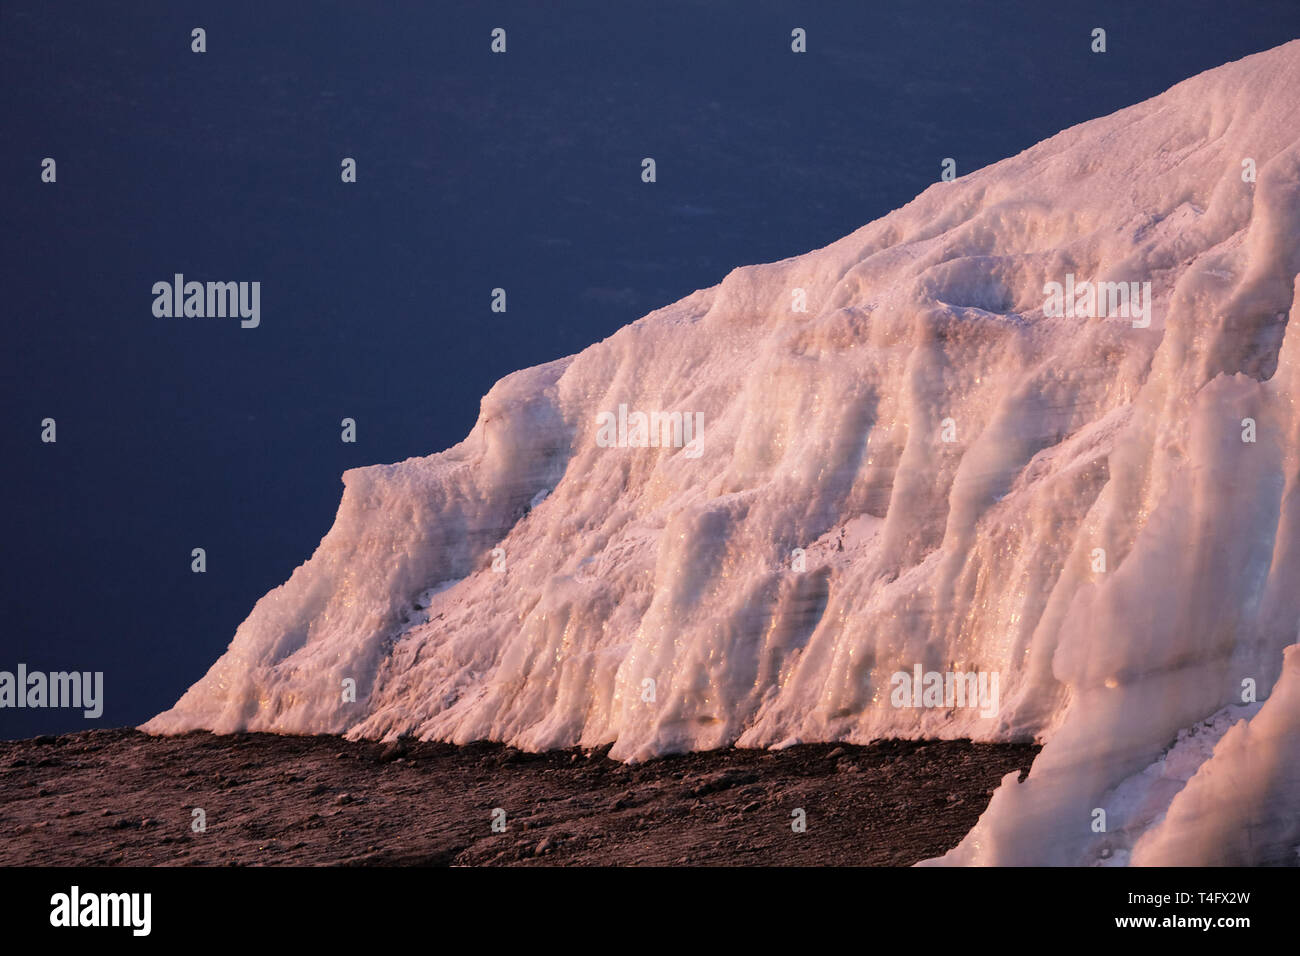 Blue dark sky and ground. Big ice and snow hill. Winter picture of the nature places. Stock Photo